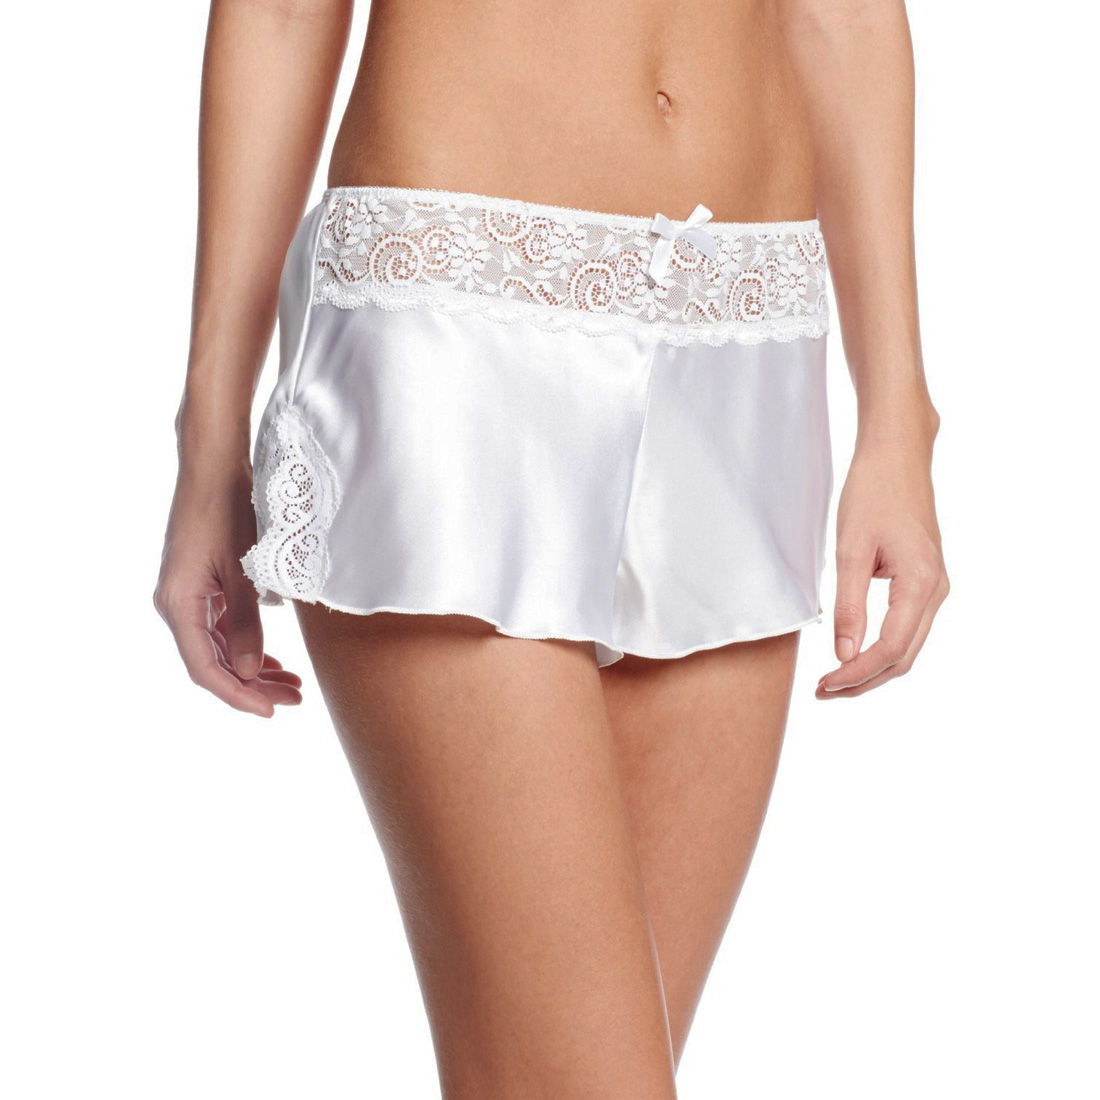 WOMEN SATIN SHORTS is rated out of 5 by Rated 5 out of 5 by missgrace from Staple Shorts These are true high-waisted shorts-perfect for petite women. The material is silky to the touch, and the elastic is convenient and form-fitting [as opposed to a button]/5(32).